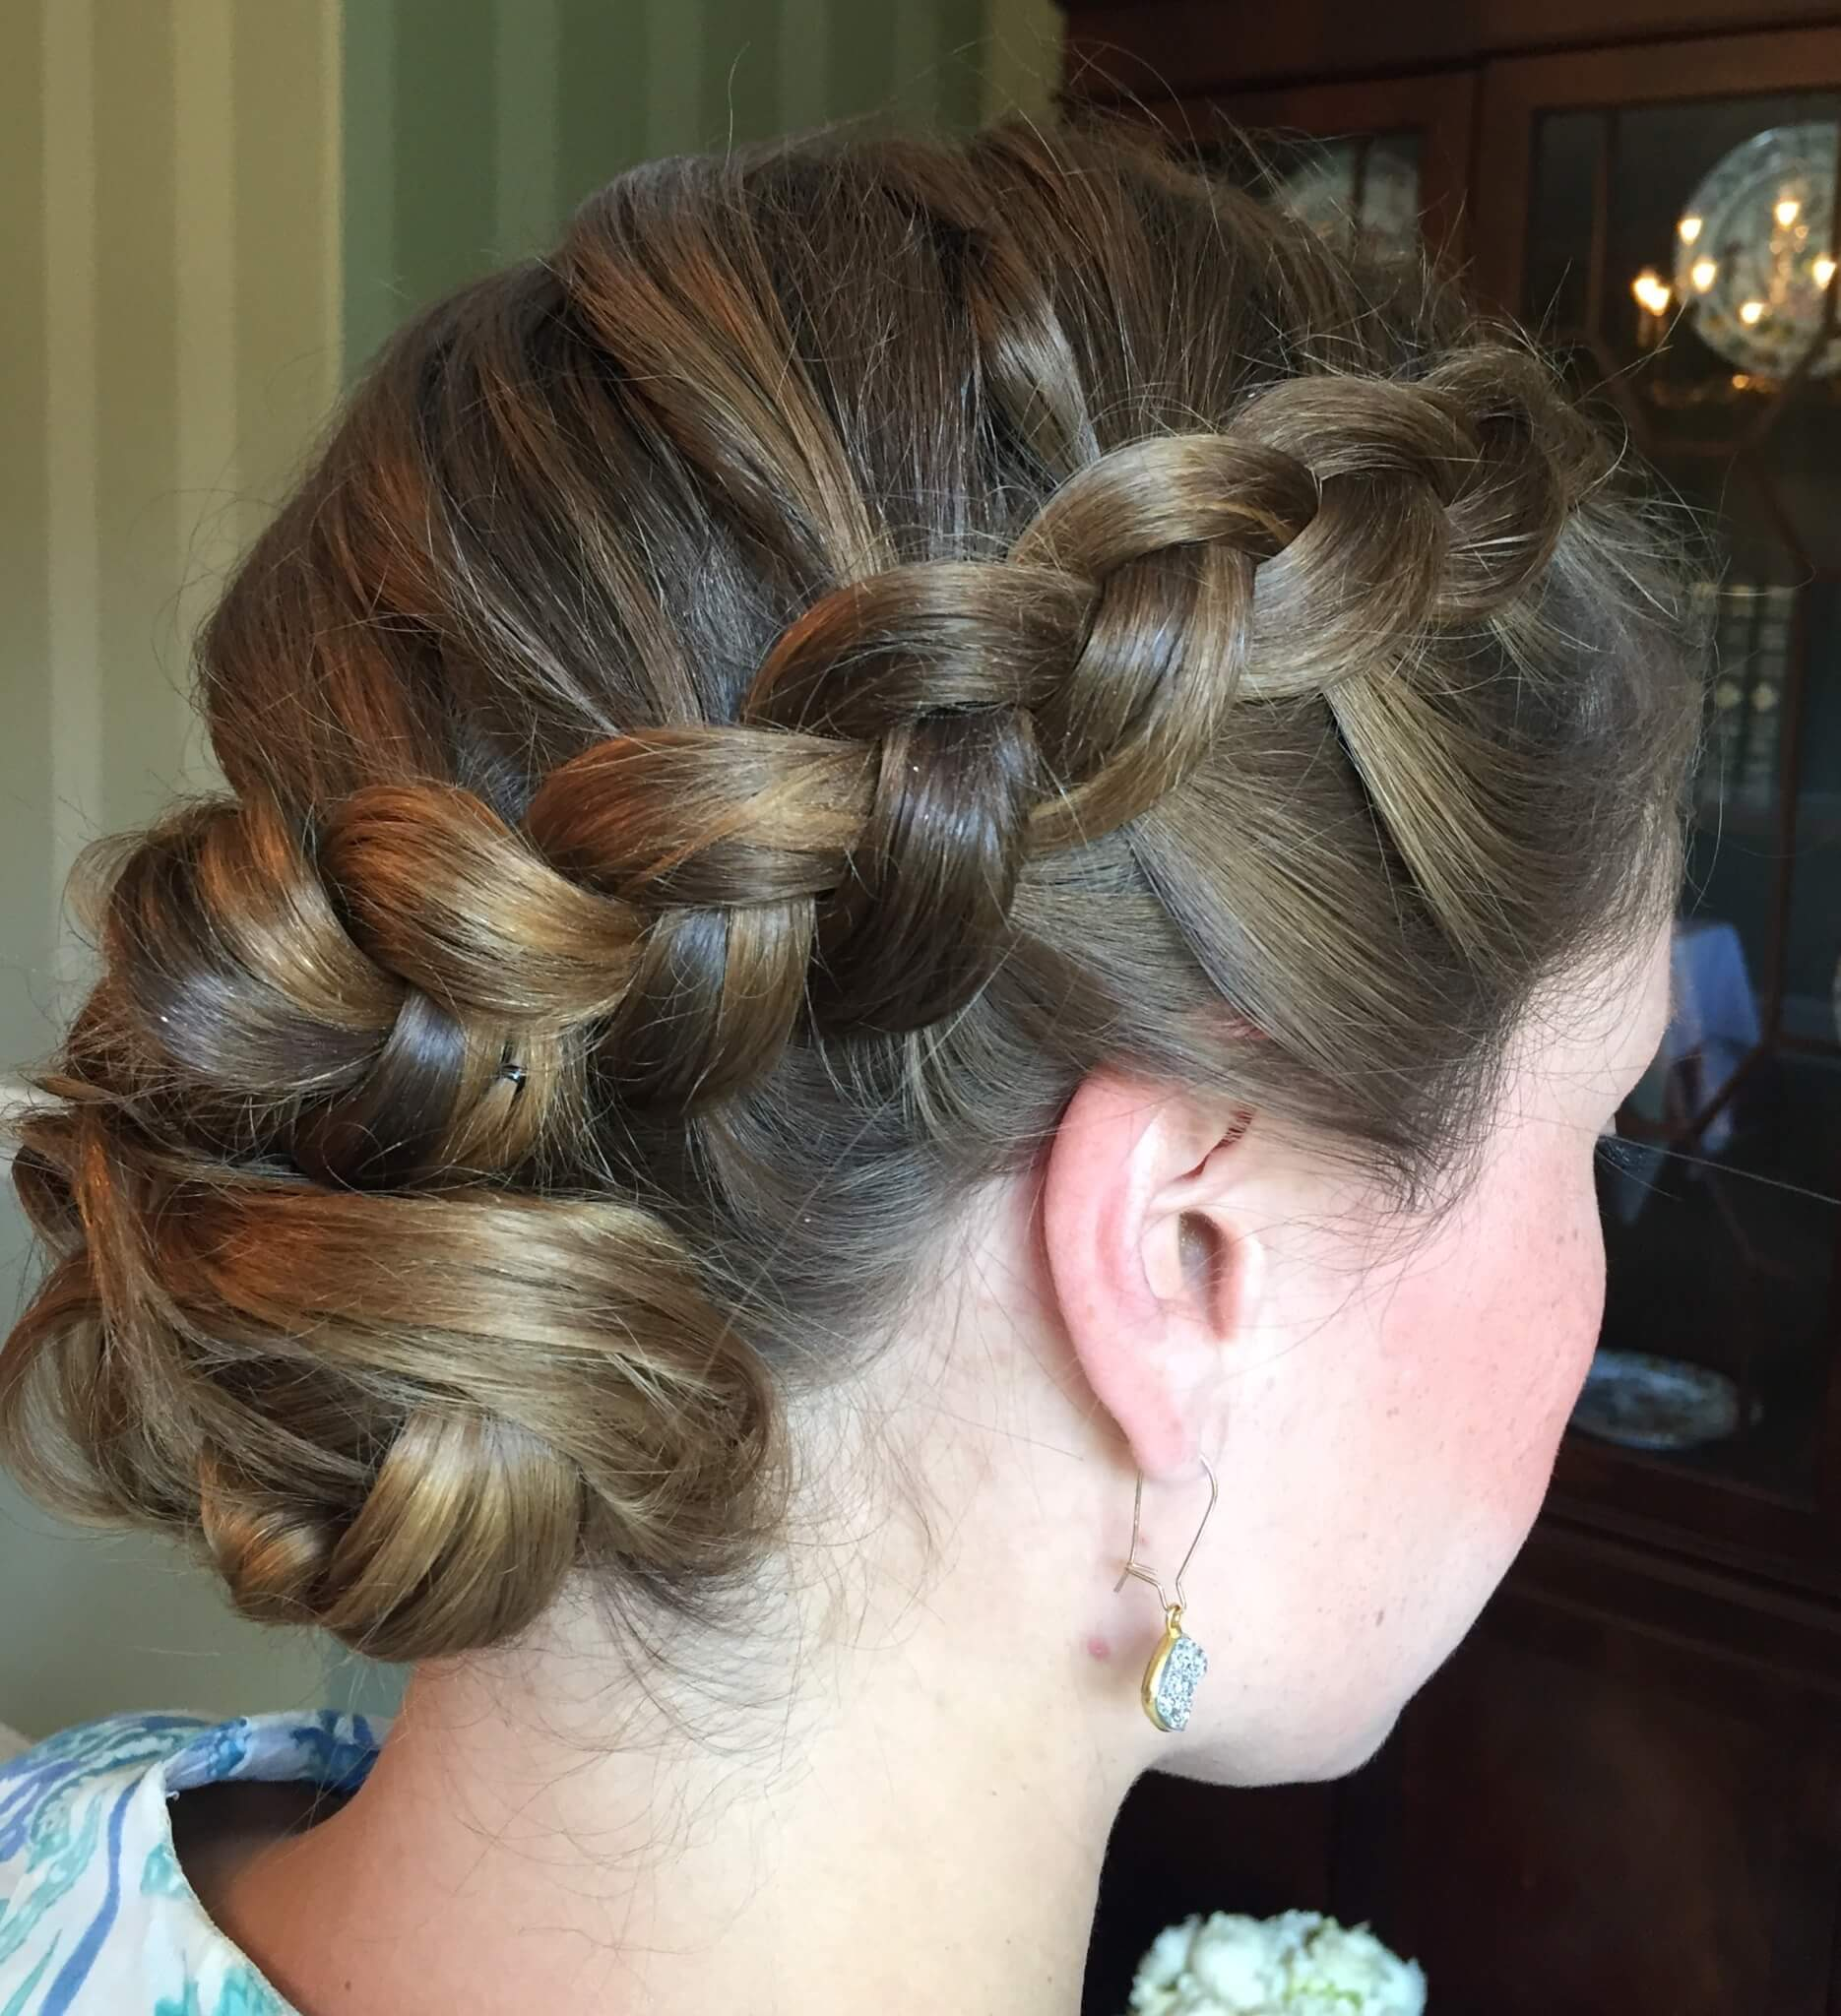 hair-salon-jacksonville-wedding-hairstyles-99-07